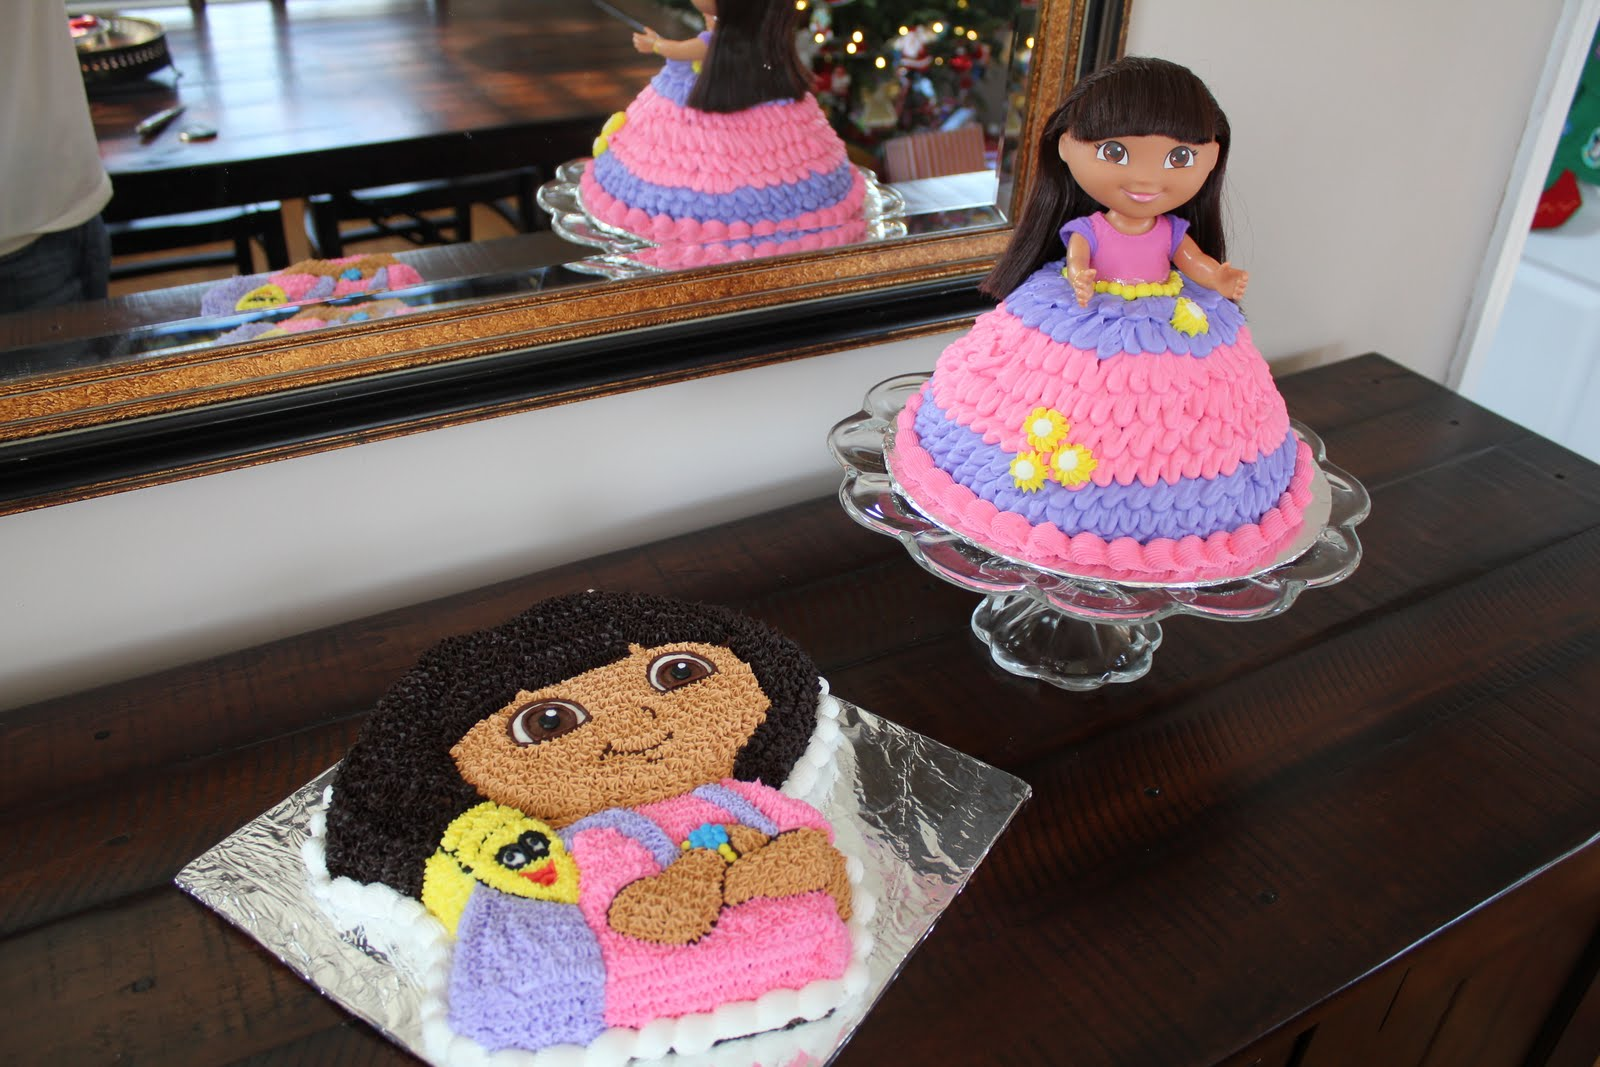 Say It Sweetly A Dora the Explorer Birthday Cake December 15 2011